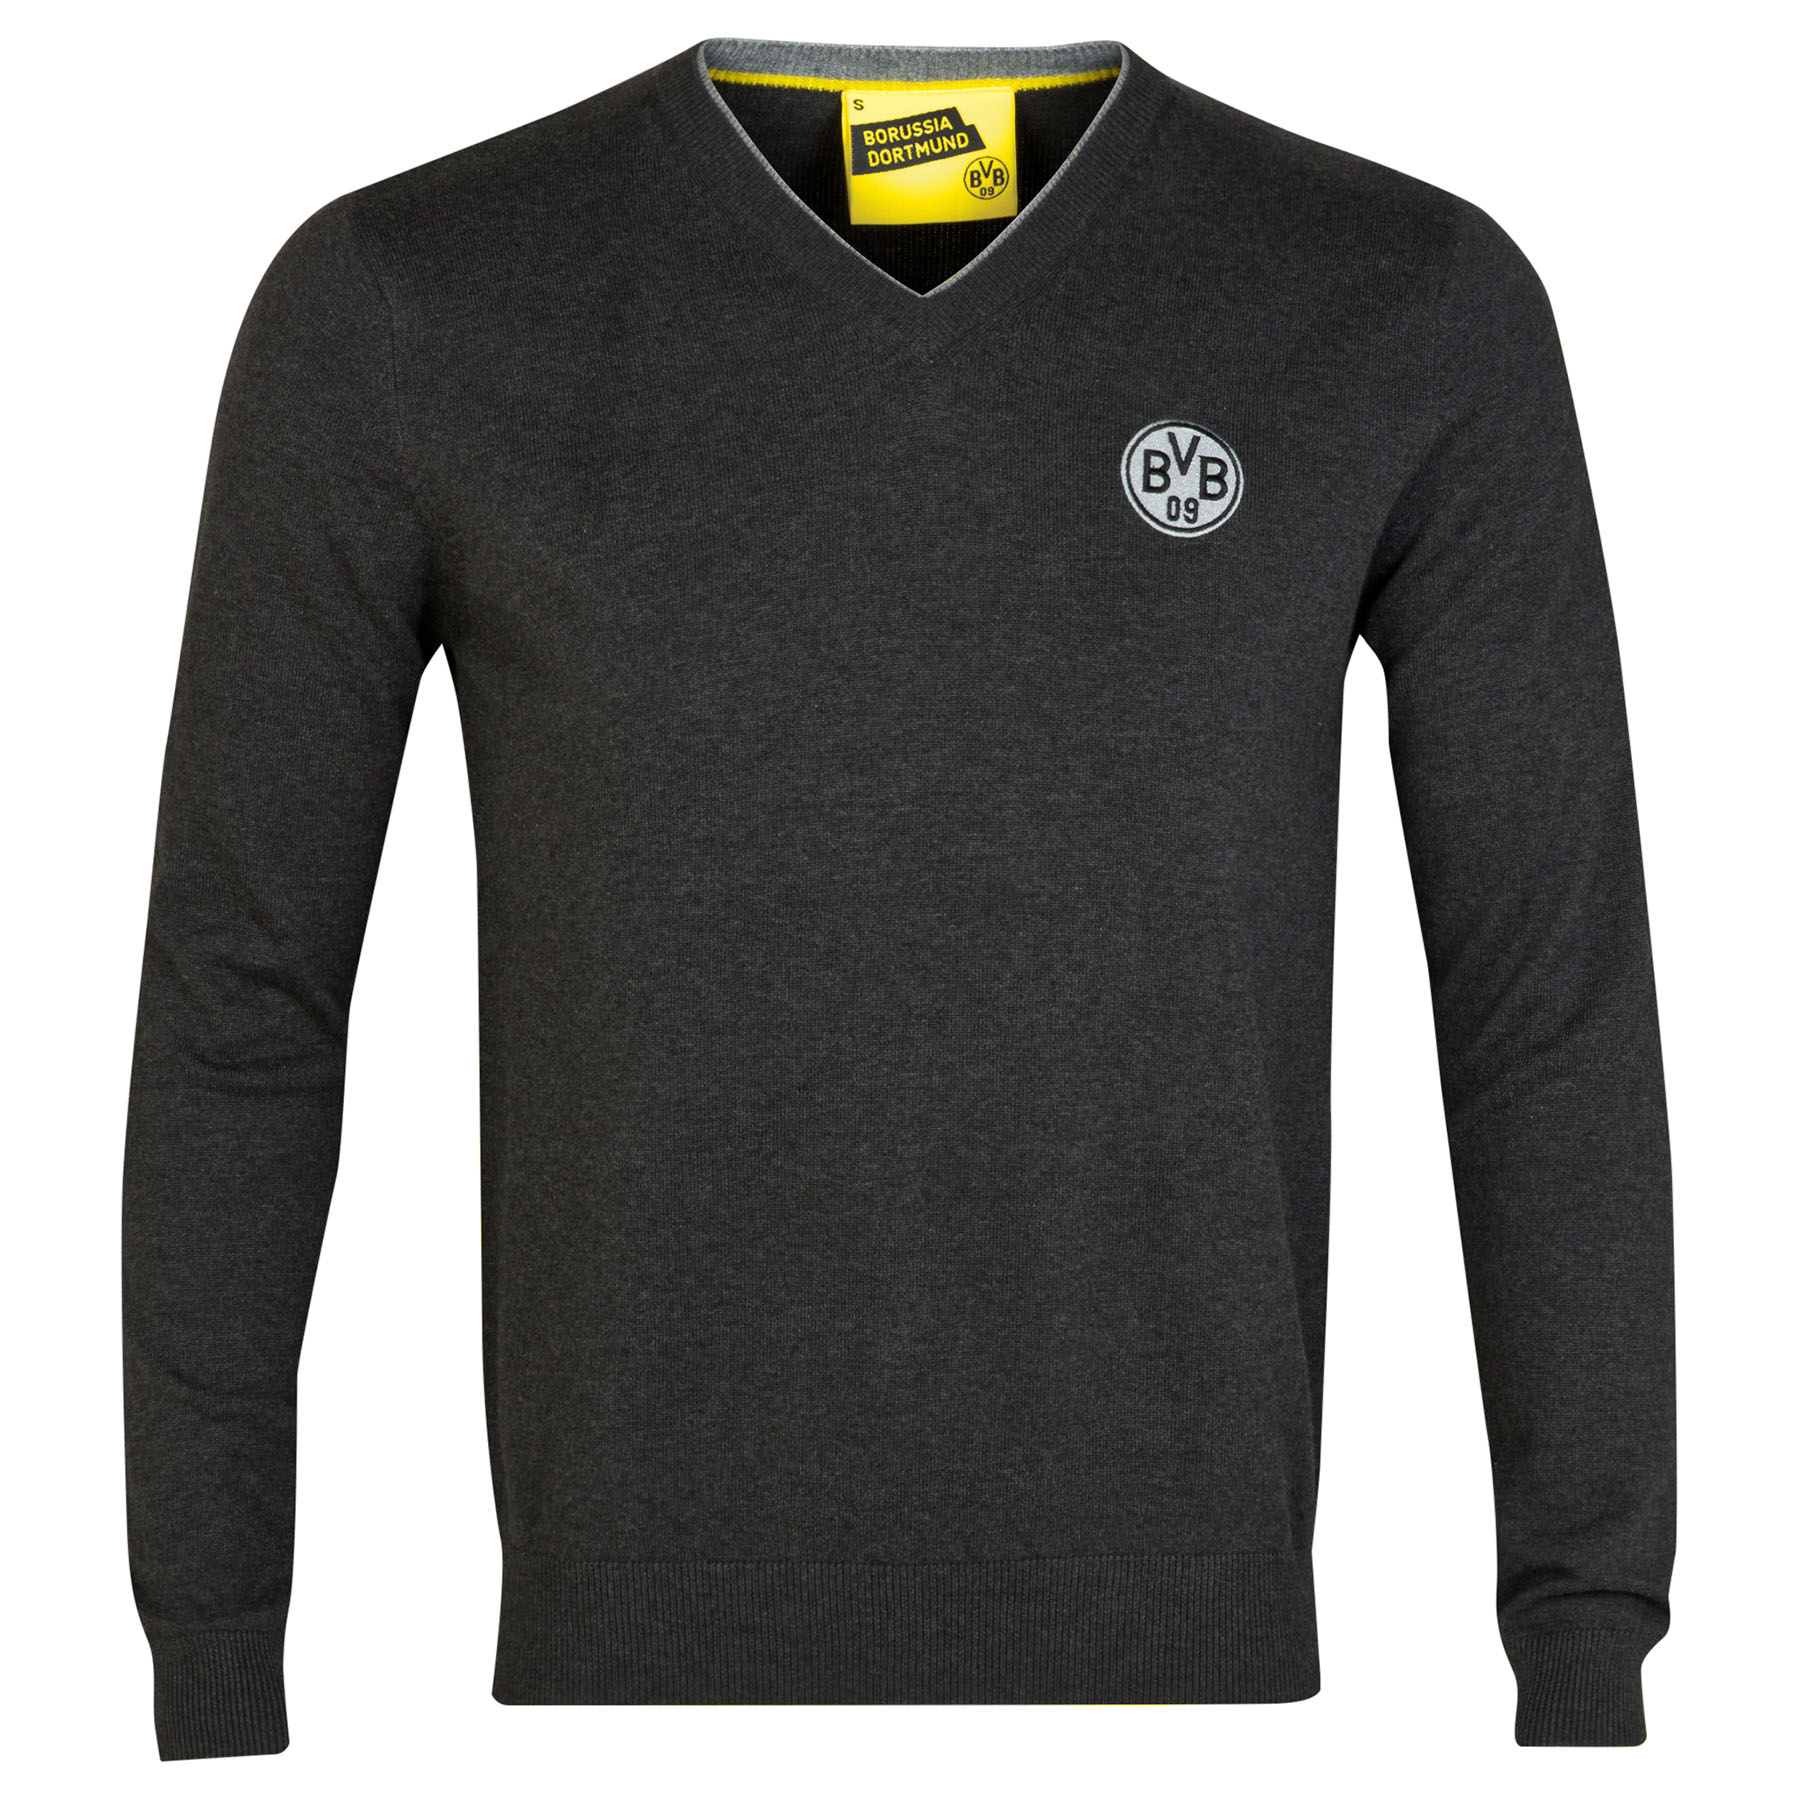 BVB Knitted V Neck Sweater - Charcoal